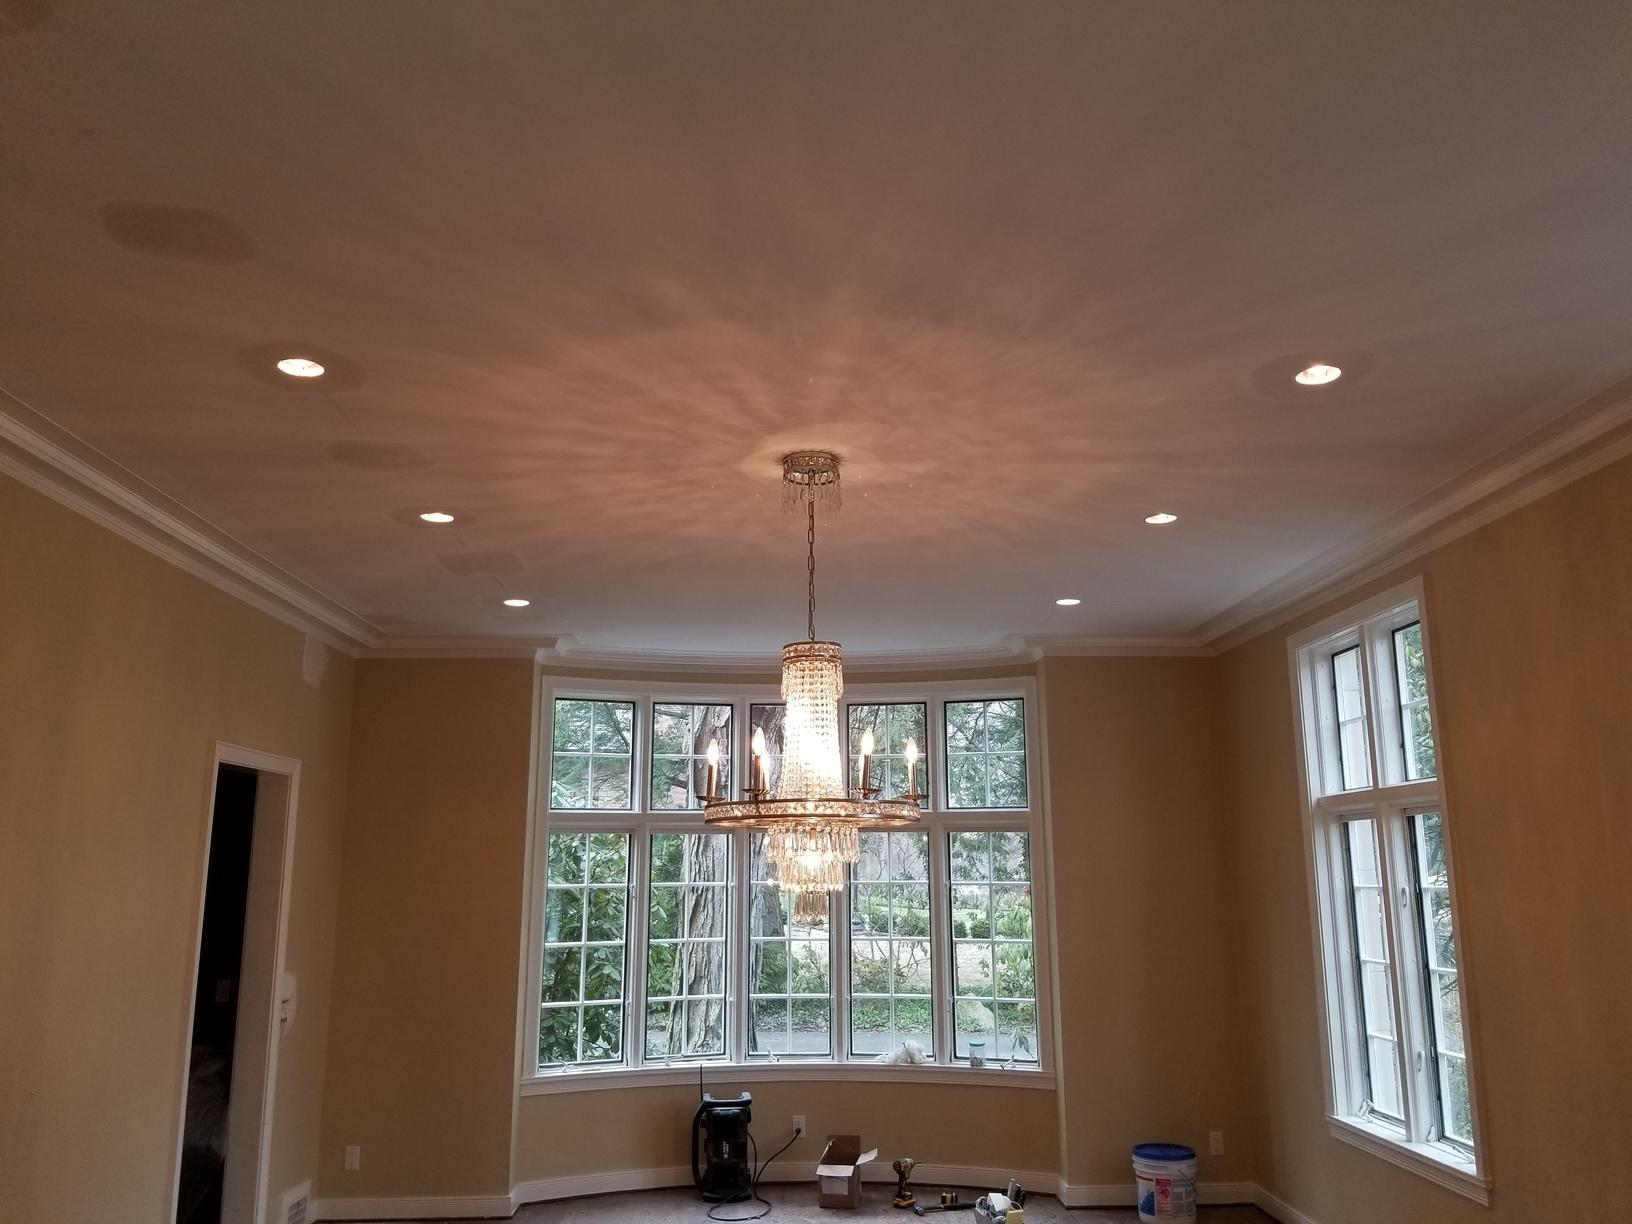 Dining room lighting upgrade for a Rochester, NY homeowner - After Photo